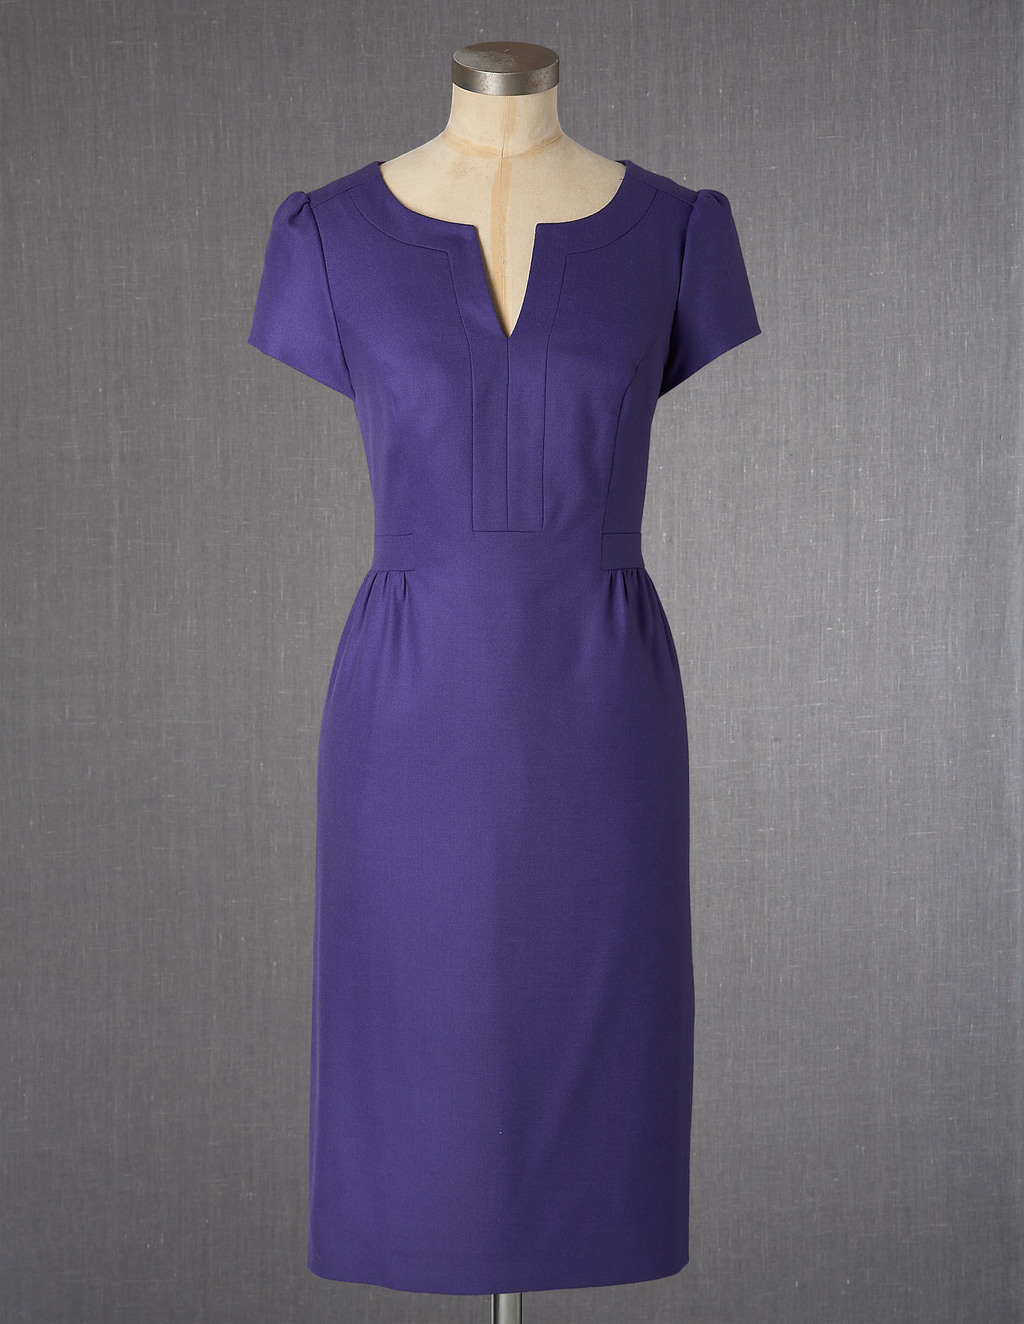 Wool Tulip Dress - style: shift; neckline: v-neck; fit: tailored/fitted; pattern: plain; predominant colour: purple; occasions: casual, work, occasion; length: on the knee; fibres: wool - stretch; sleeve length: short sleeve; sleeve style: standard; pattern type: fabric; pattern size: standard; texture group: other - light to midweight; season: a/w 2013